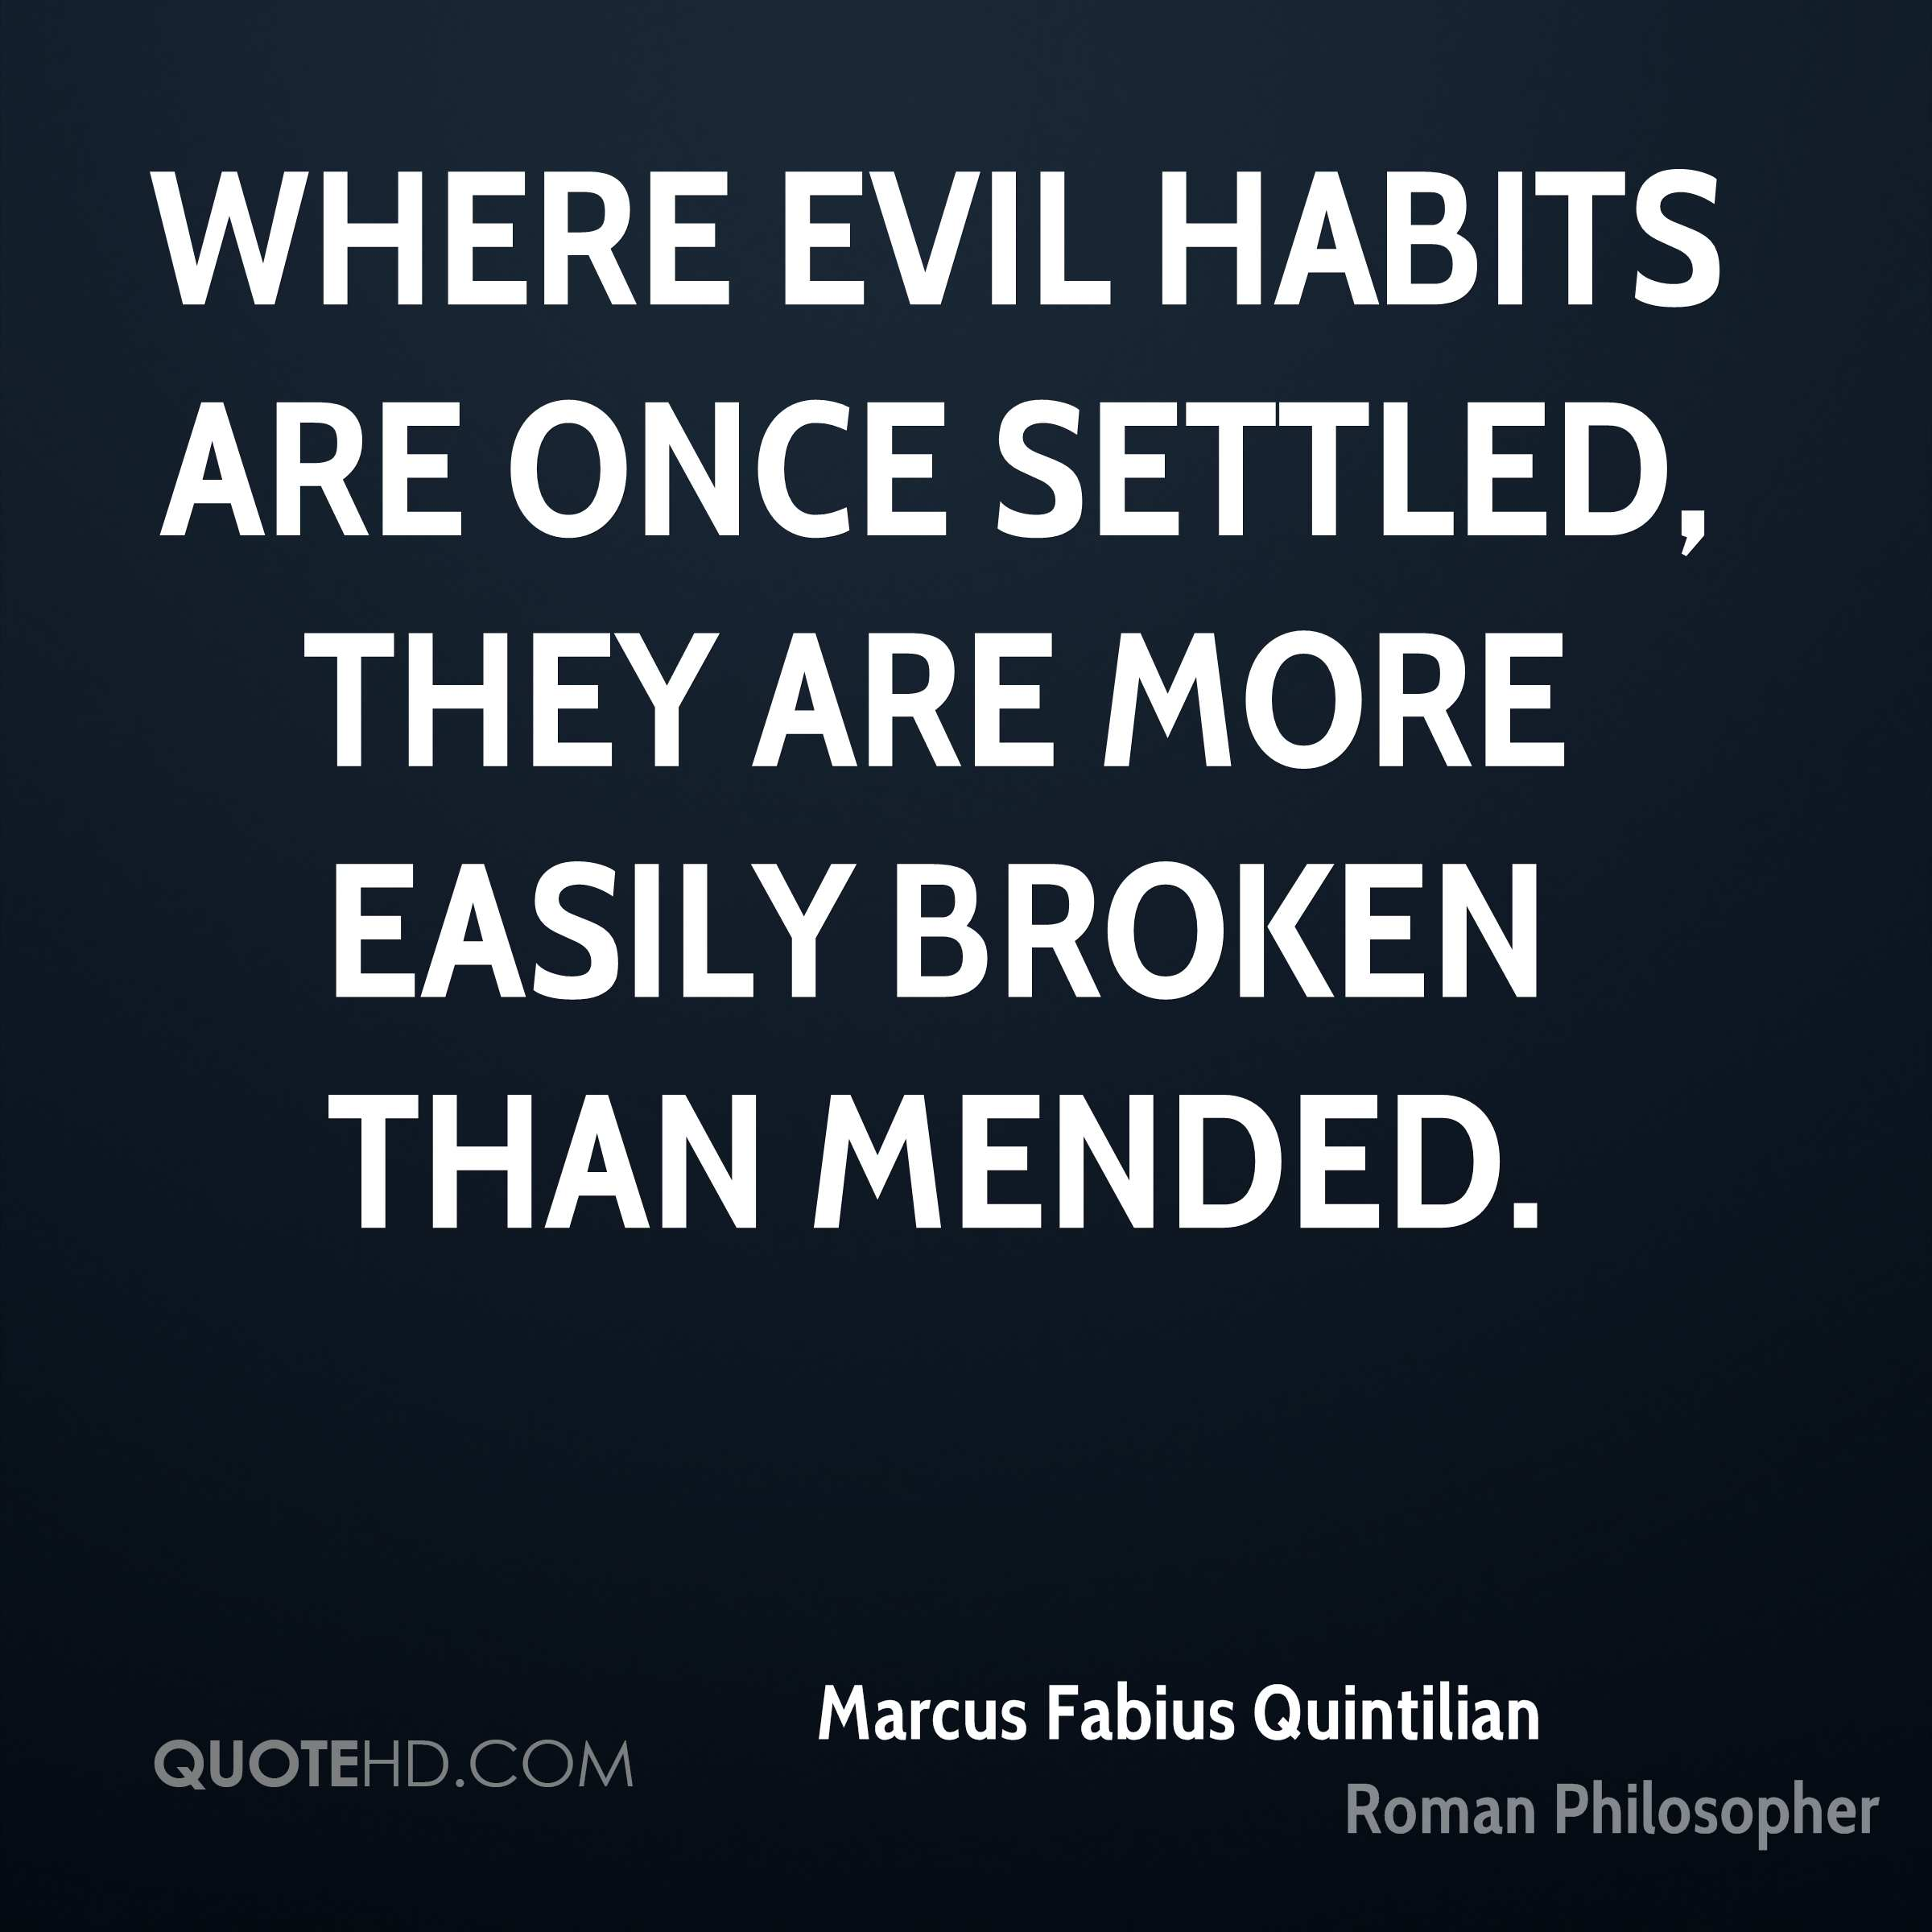 Where evil habits are once settled, they are more easily broken than mended.